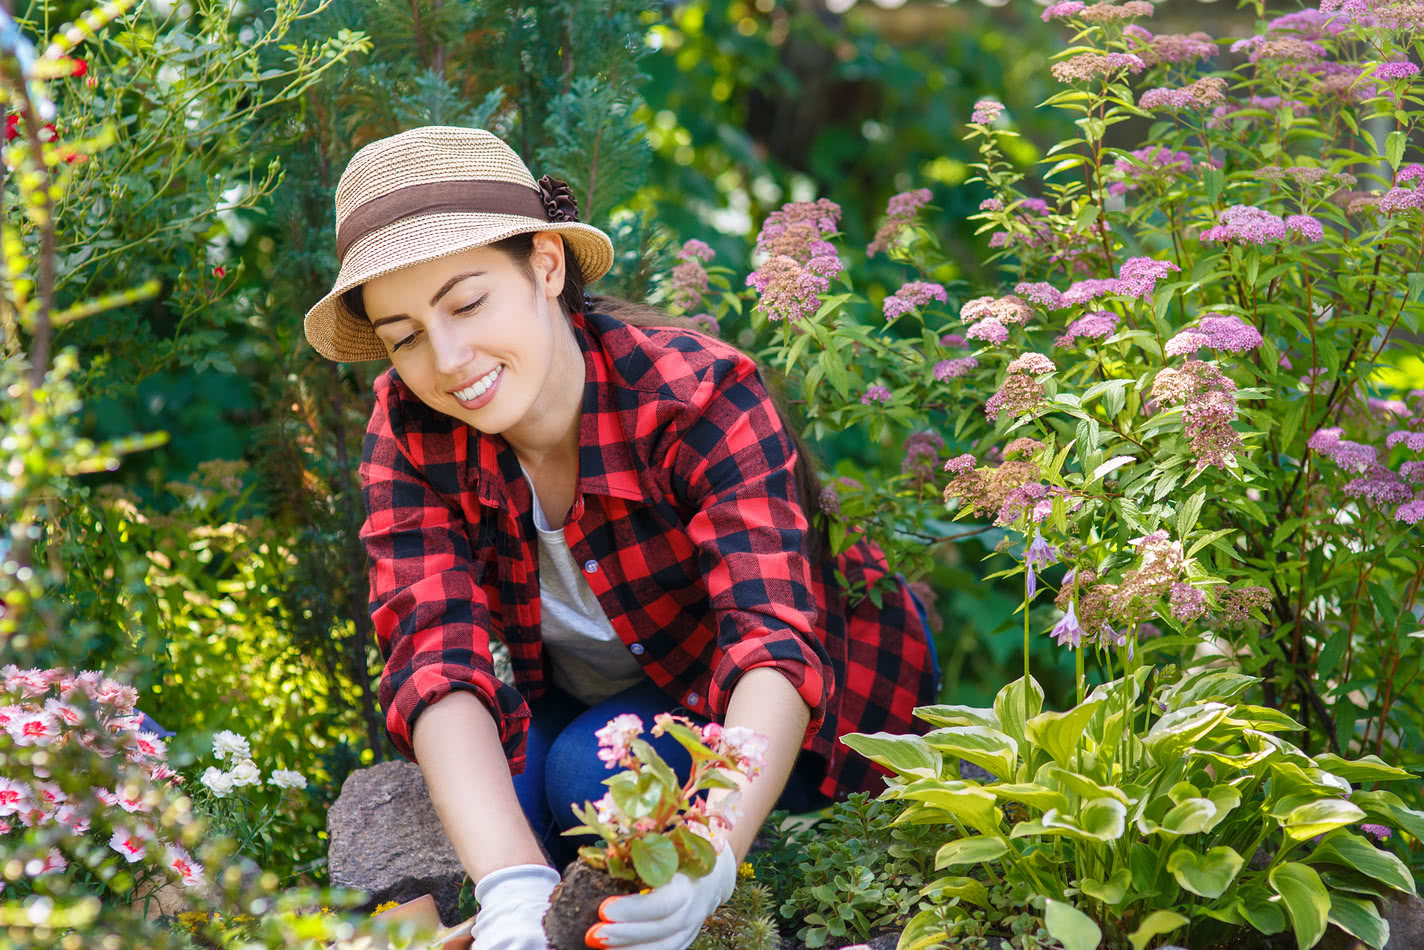 A young woman gardens and wonders how to turn your hobby into a business